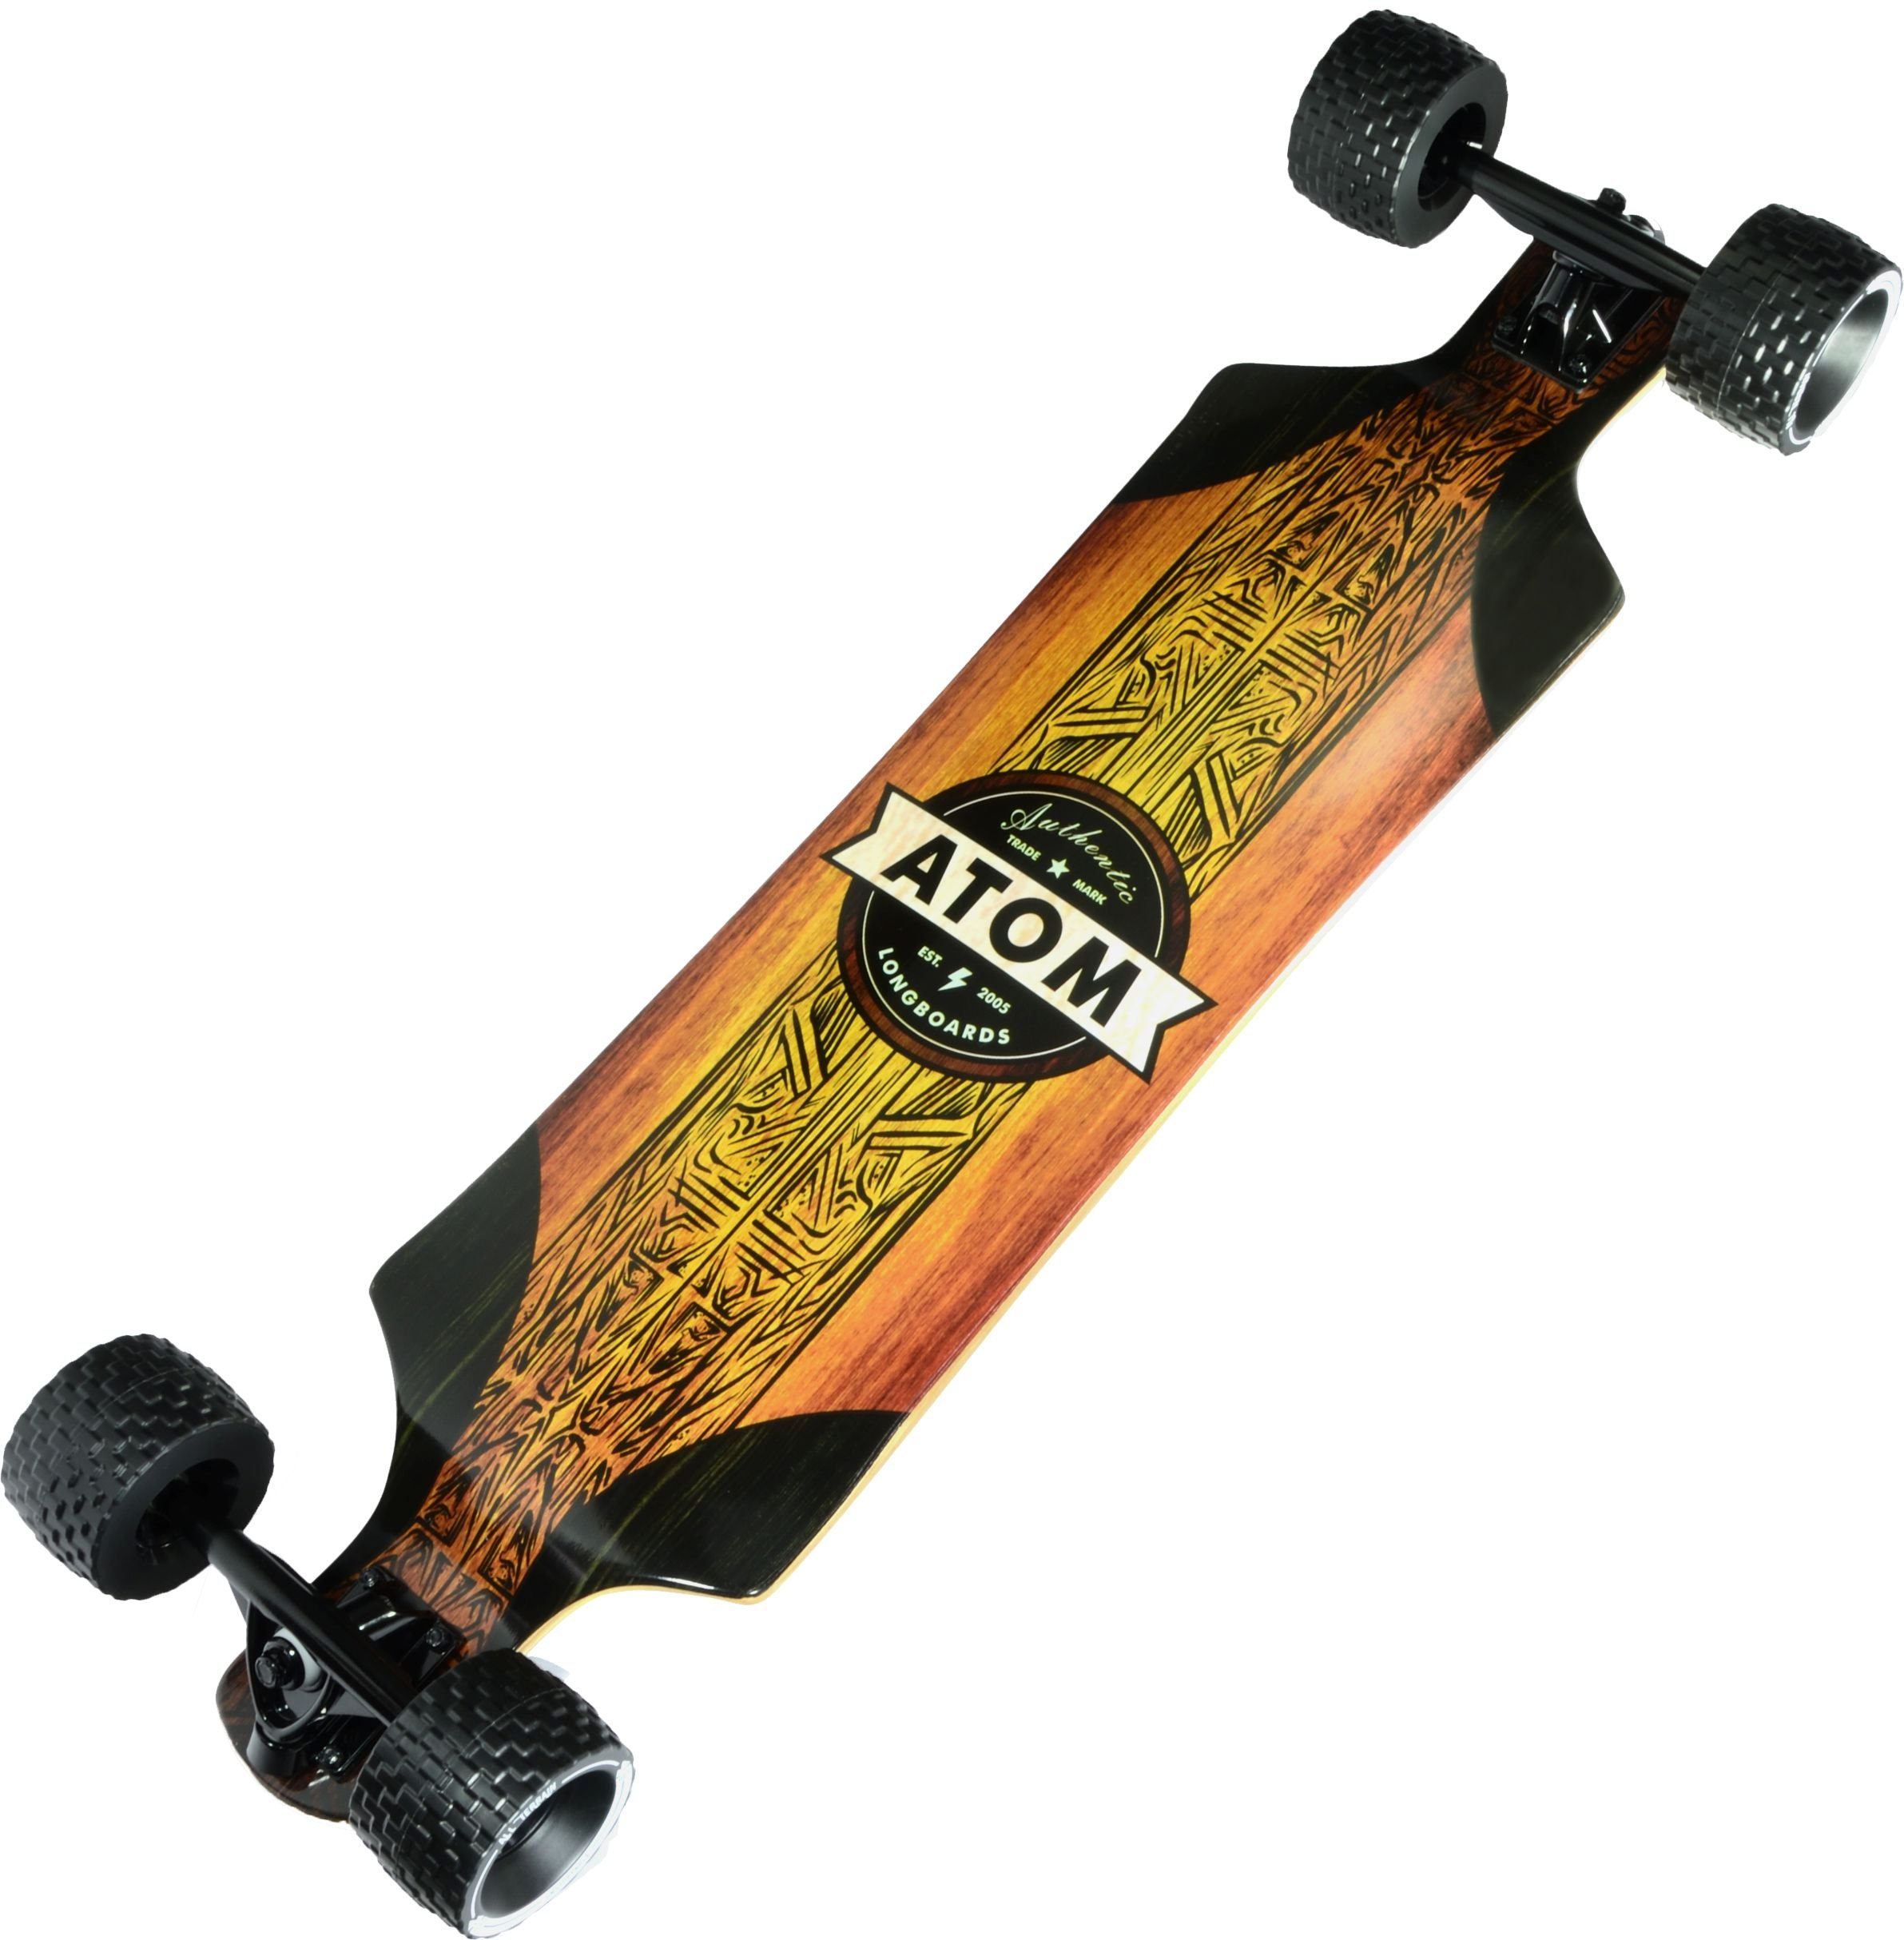 Atom Longboards All Terrain Longboard Woody